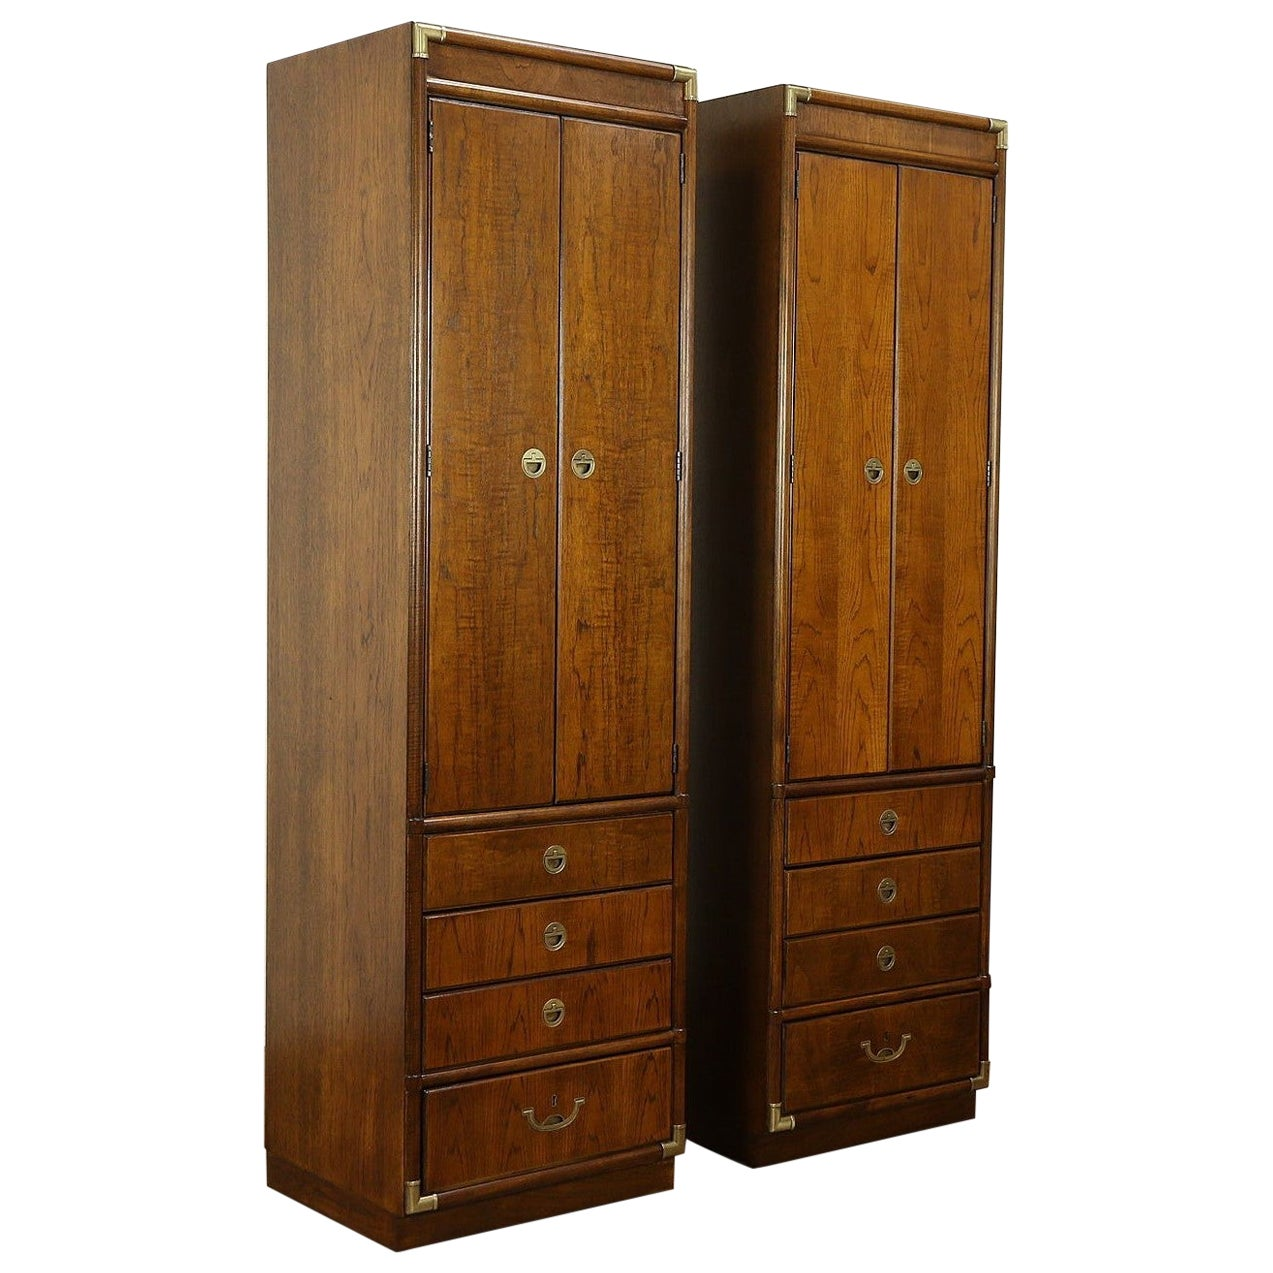 Pair of Vintage Campaign Style Drexel Accolade II Cabinets